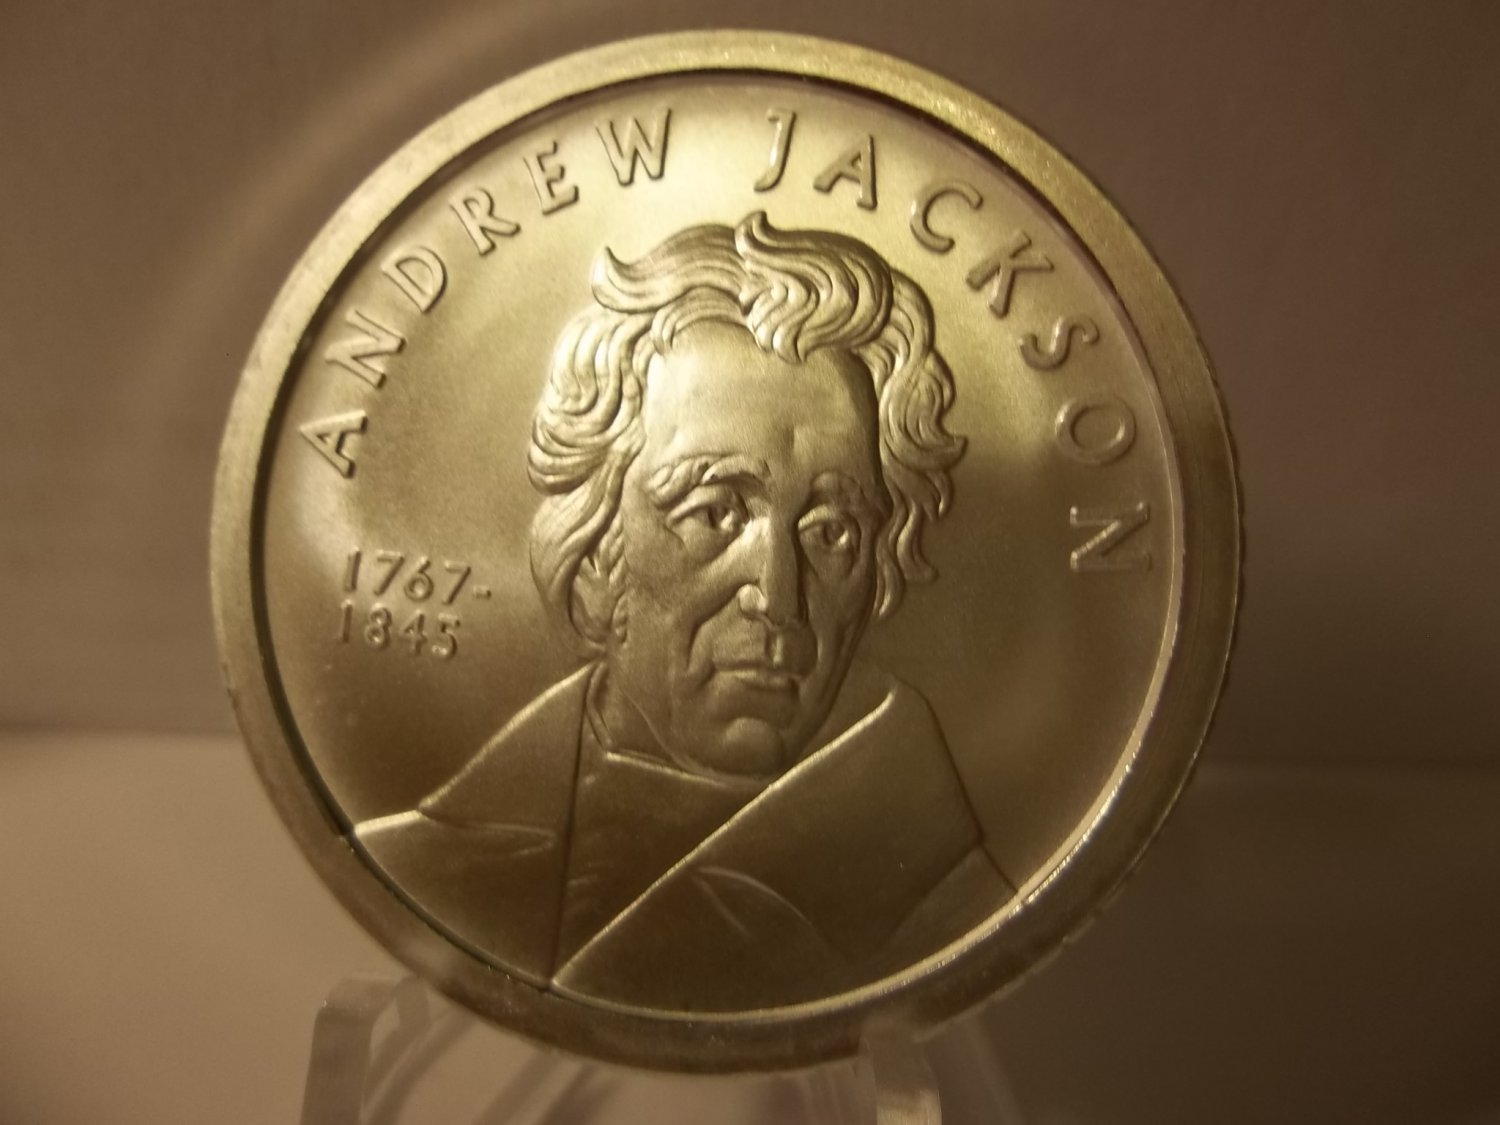 1767-1845 $50 Proof Like Andrew Jackson 1 oz .999 Fine Silver Coin